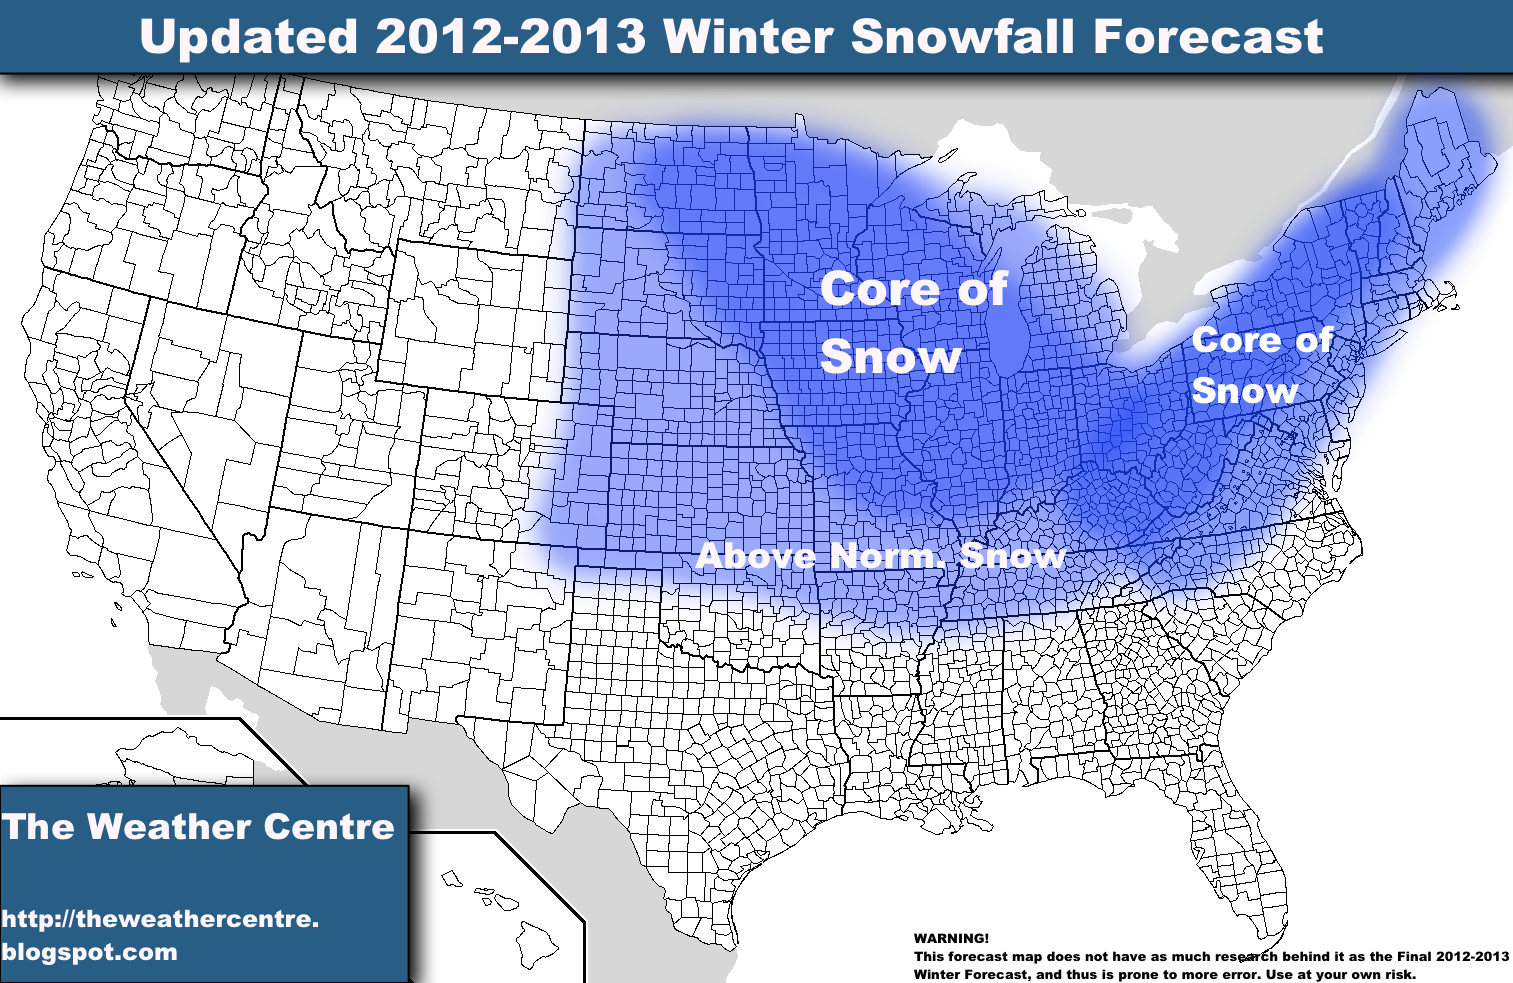 forecast of what i am expecting in terms of snowfall this winter